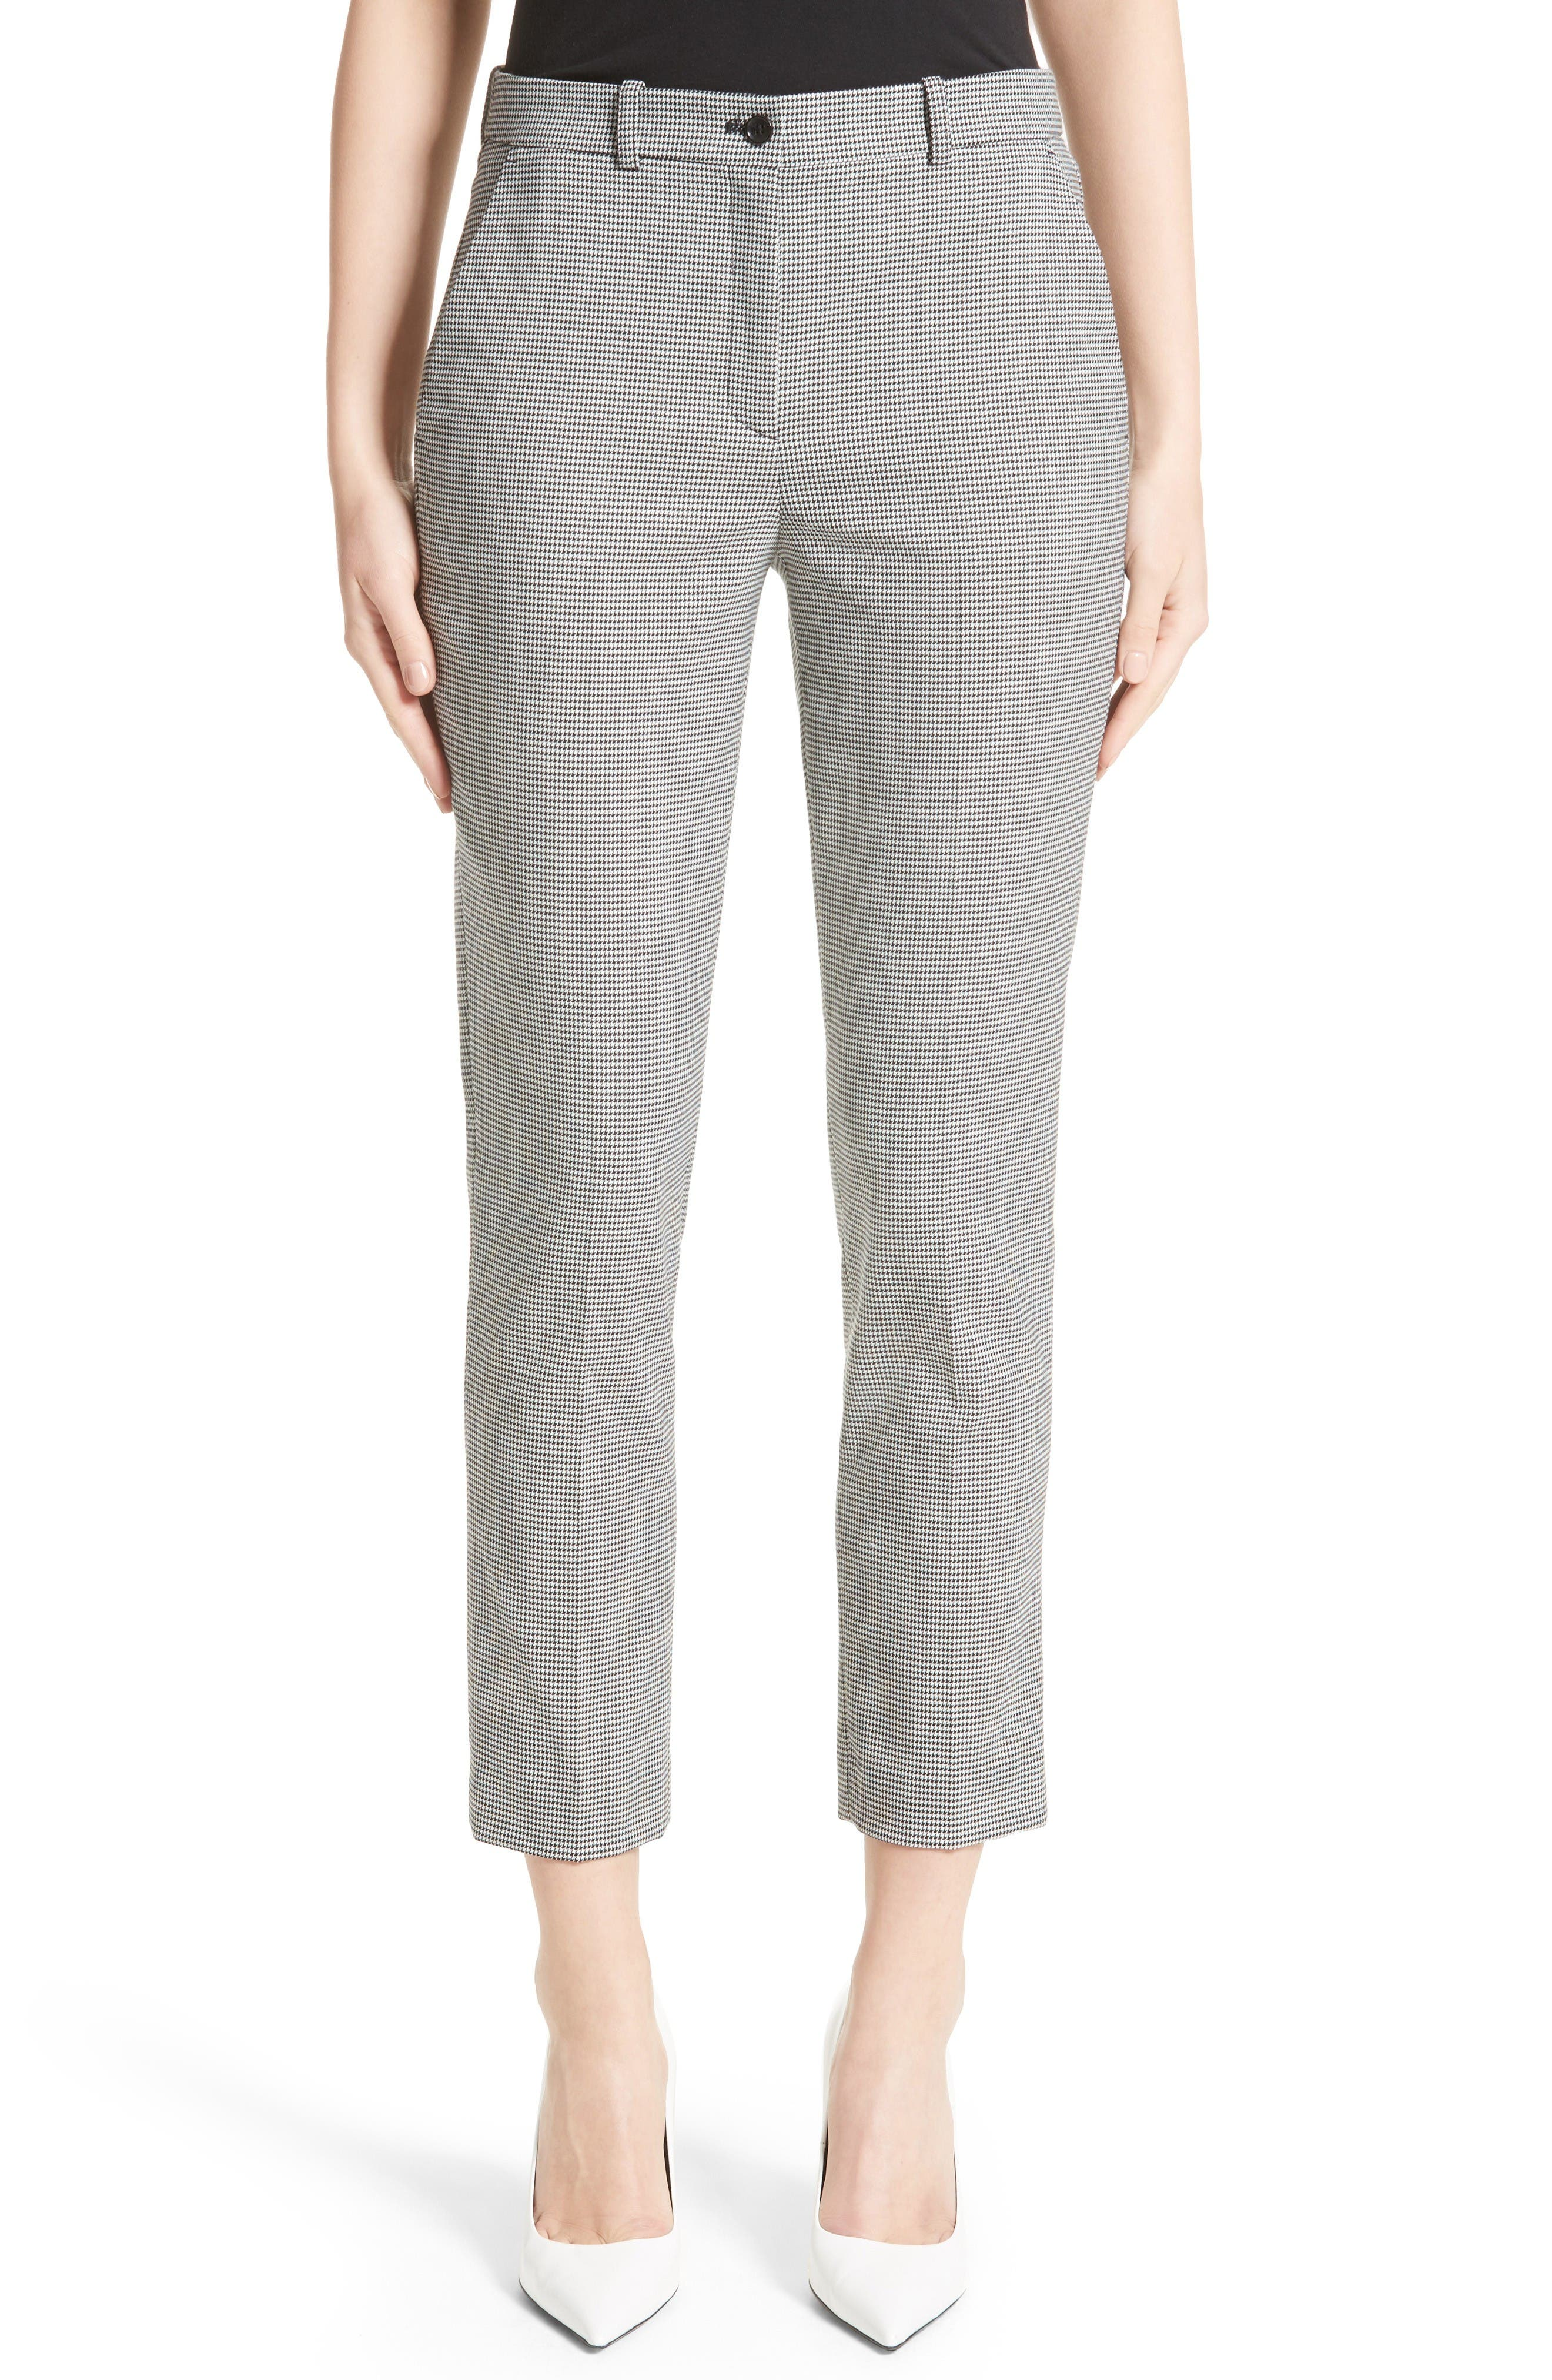 Michael Kors Samantha Houndstooth Pants